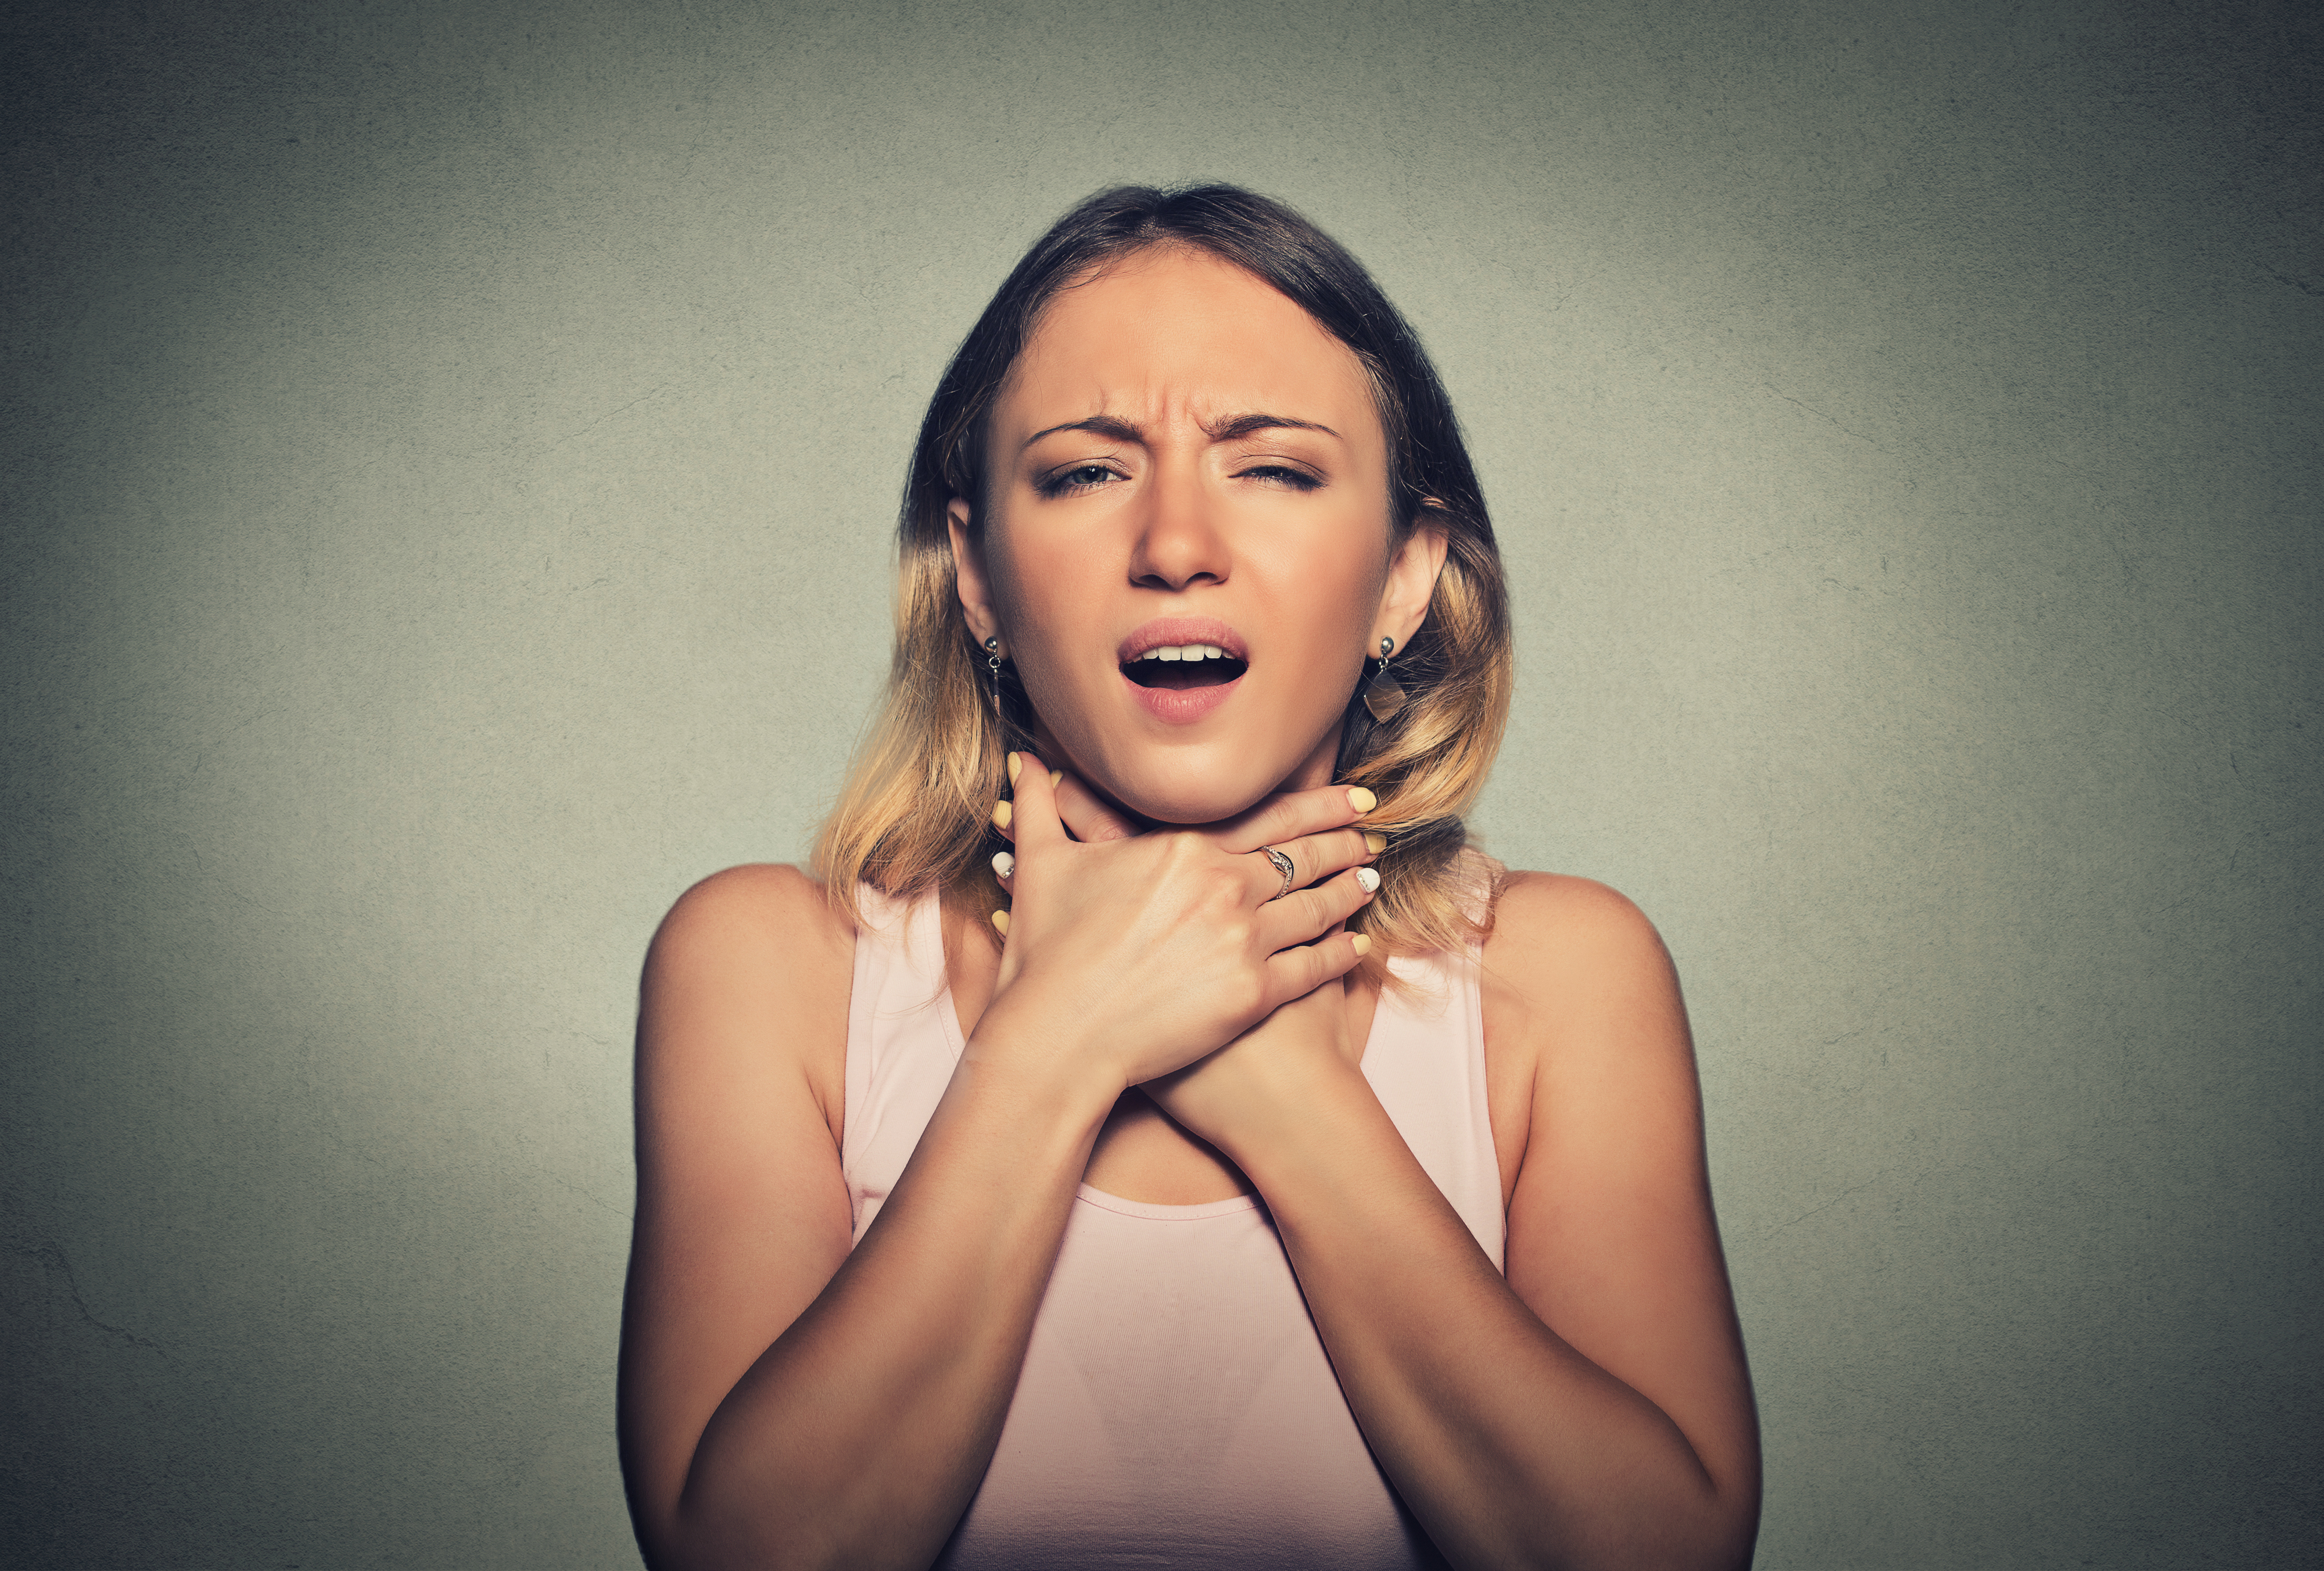 "This photo illustrates a young woman unable to breathe. According to the Mayo Clinic, one of the symptoms of anaphylaxis is constriction of the airways and a swollen tongue or throat, which can cause wheezing and trouble breathing. Its webapge states: ""Anaphylaxis symptoms usually occur within minutes of exposure to an allergen. Sometimes, however, anaphylaxis can occur a half-hour or longer after exposure. Anaphylaxis symptoms include: • Skin reactions, including hives along with itching, and flushed or pale skin (almost always present with anaphylaxis). • A feeling of warmth. • The sensation of a lump in your throat. • Constriction of airways (see above). • A weak and rapid pulse • Nausea, vomiting or diarrhea. • Dizziness or fainting."" Mayo advises emergency medical help be sought immediately. ""If the person having the attack carries an epinephrine autoinjector (such as an EpiPen or EpiPen Jr),"" it advises, ""give him or her a shot right away. Even if symptoms improve after an emergency epinephrine injection, a visit to the emergency department is still necessary to make sure symptoms don't return."" 